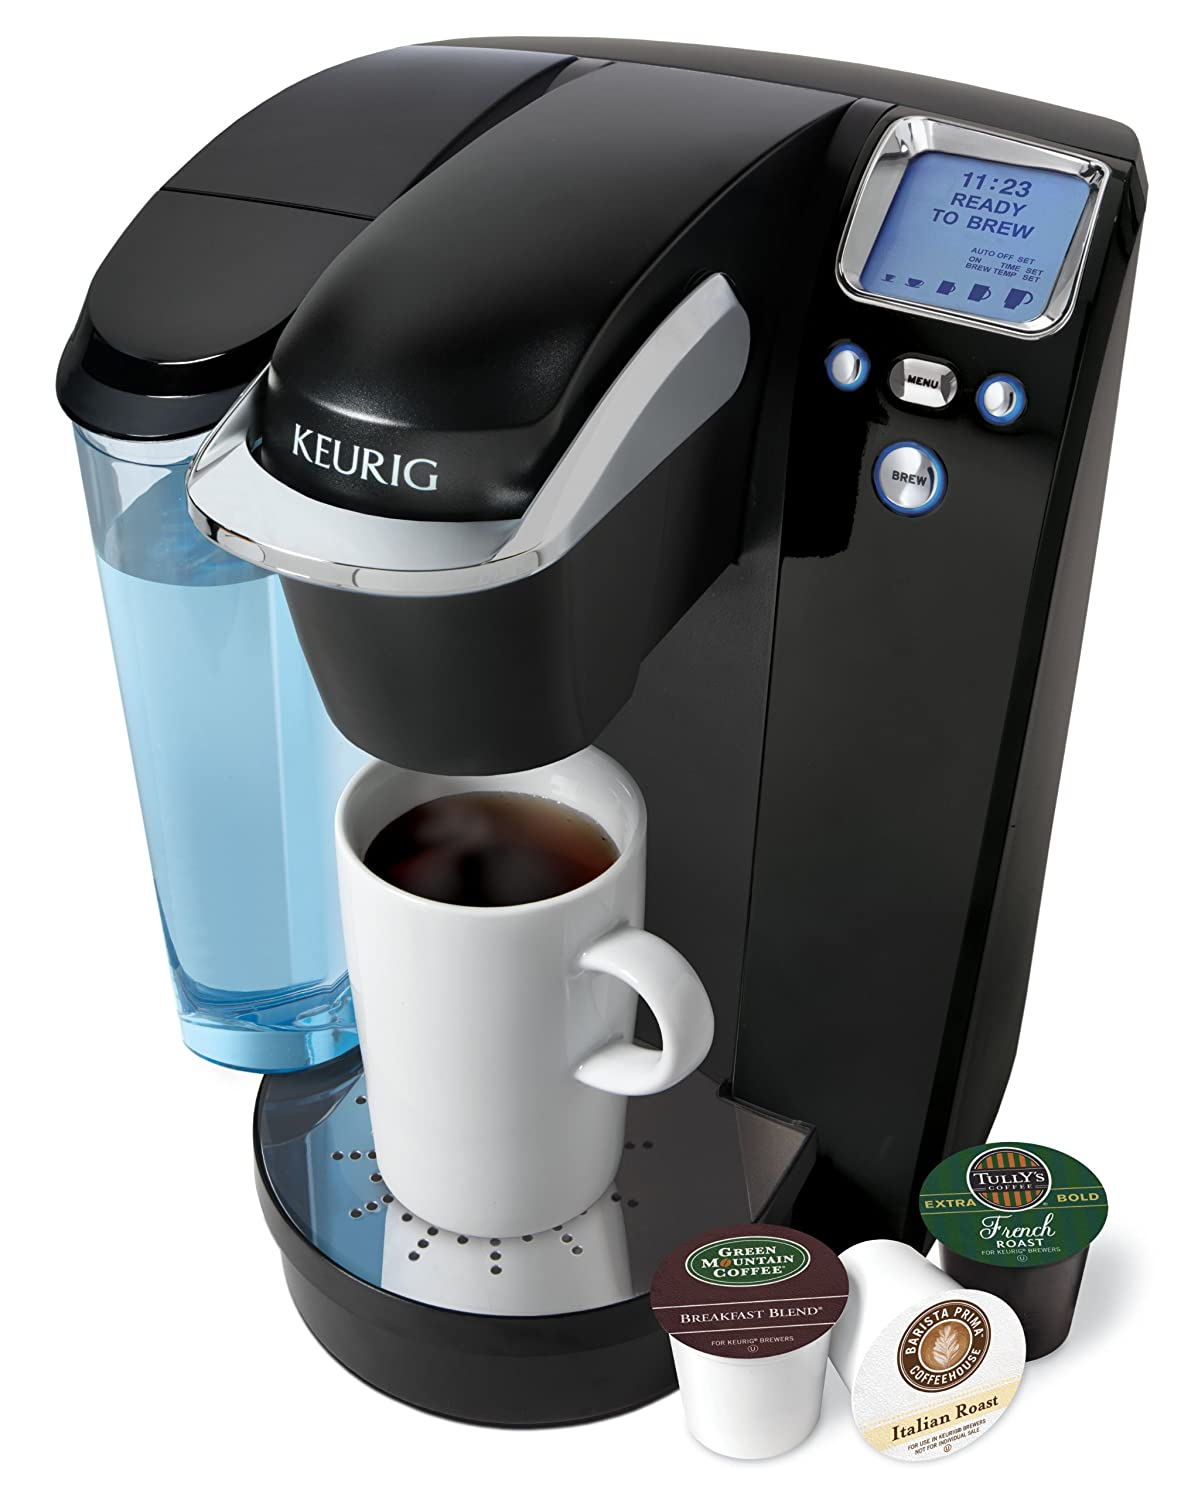 Keurig K75 Single-Cup Home-Brewing System with Water Filter Kit, Platinum/Black